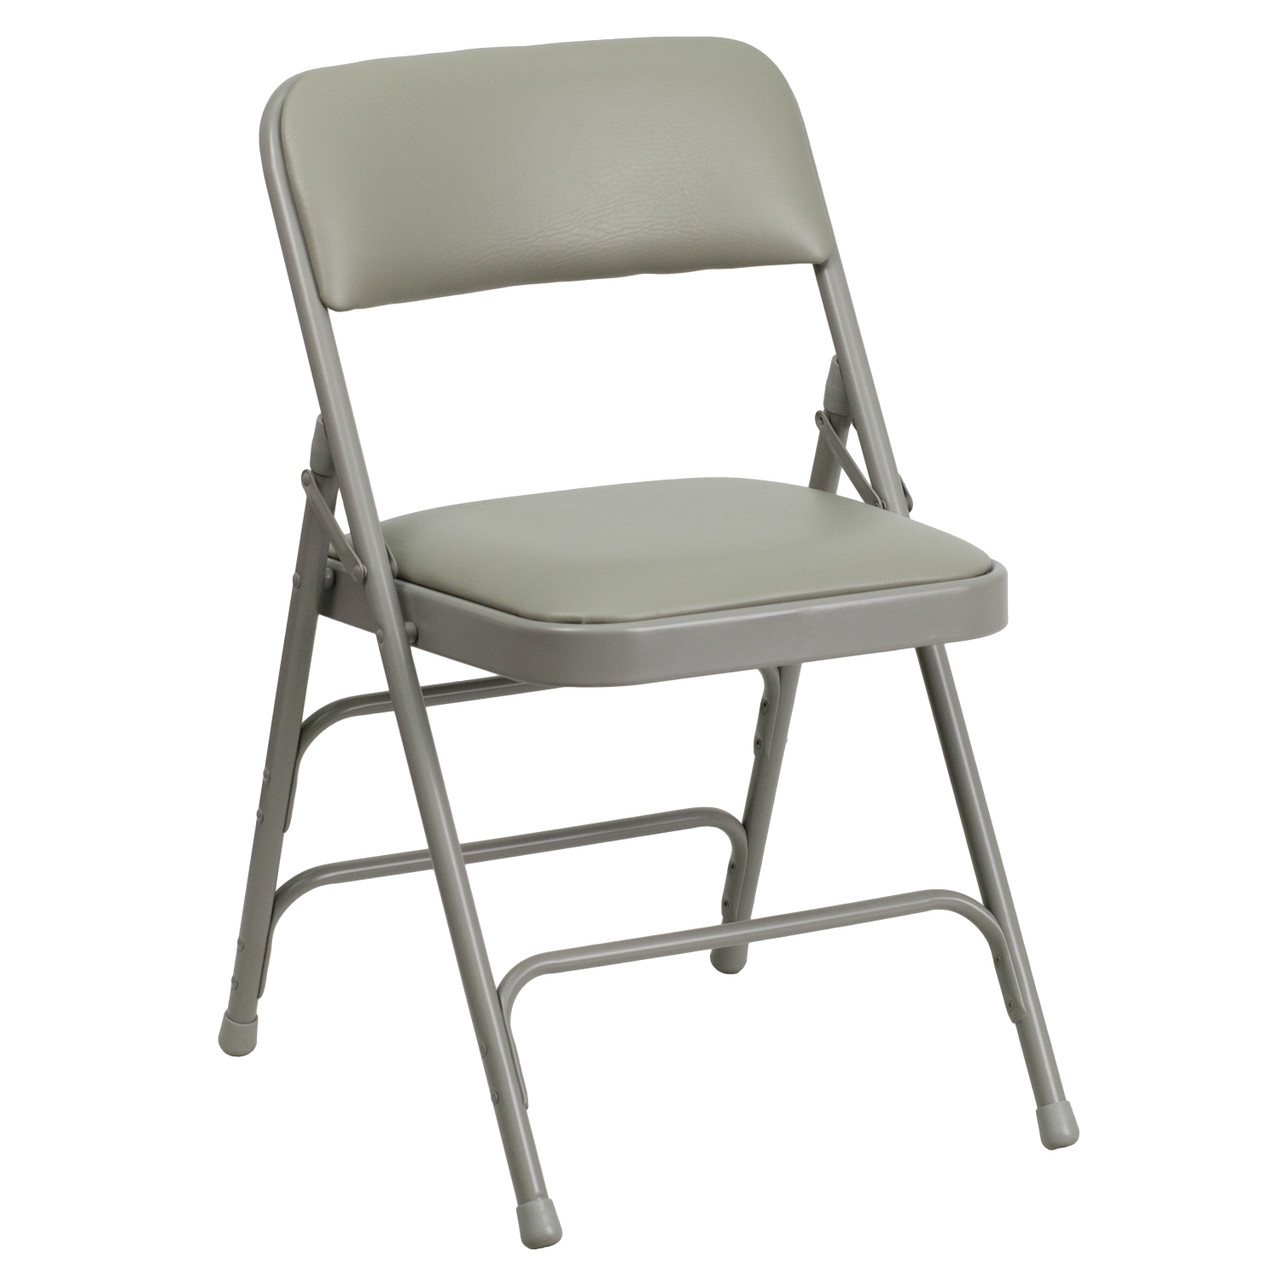 Swell Advantage Grey Padded Folding Chair Dove Grey 1 In Vinyl Seat Ha Mc309Av Gy Gg Pabps2019 Chair Design Images Pabps2019Com